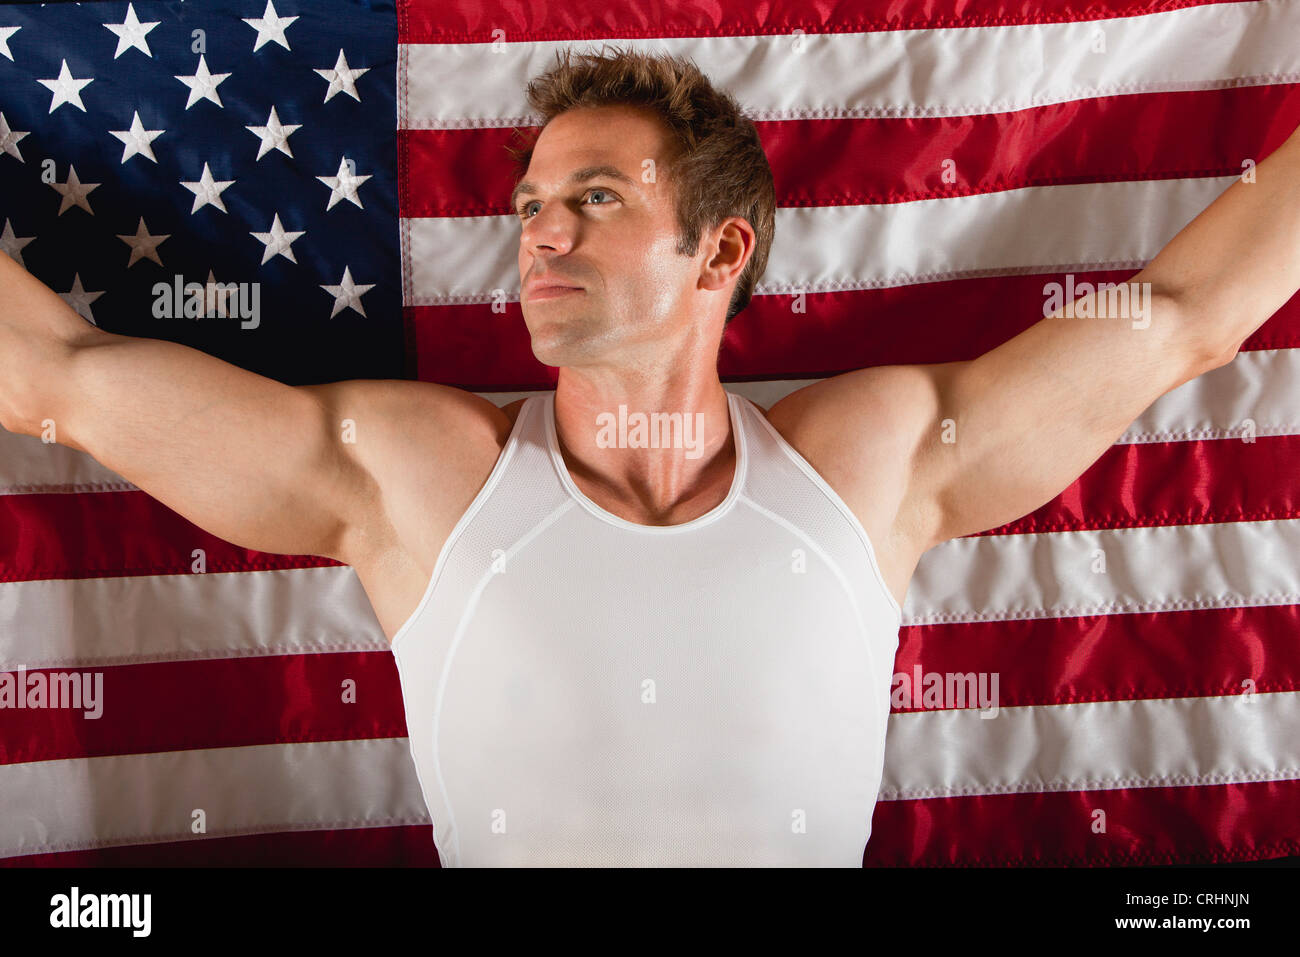 Male athlete in front of American flag - Stock Image